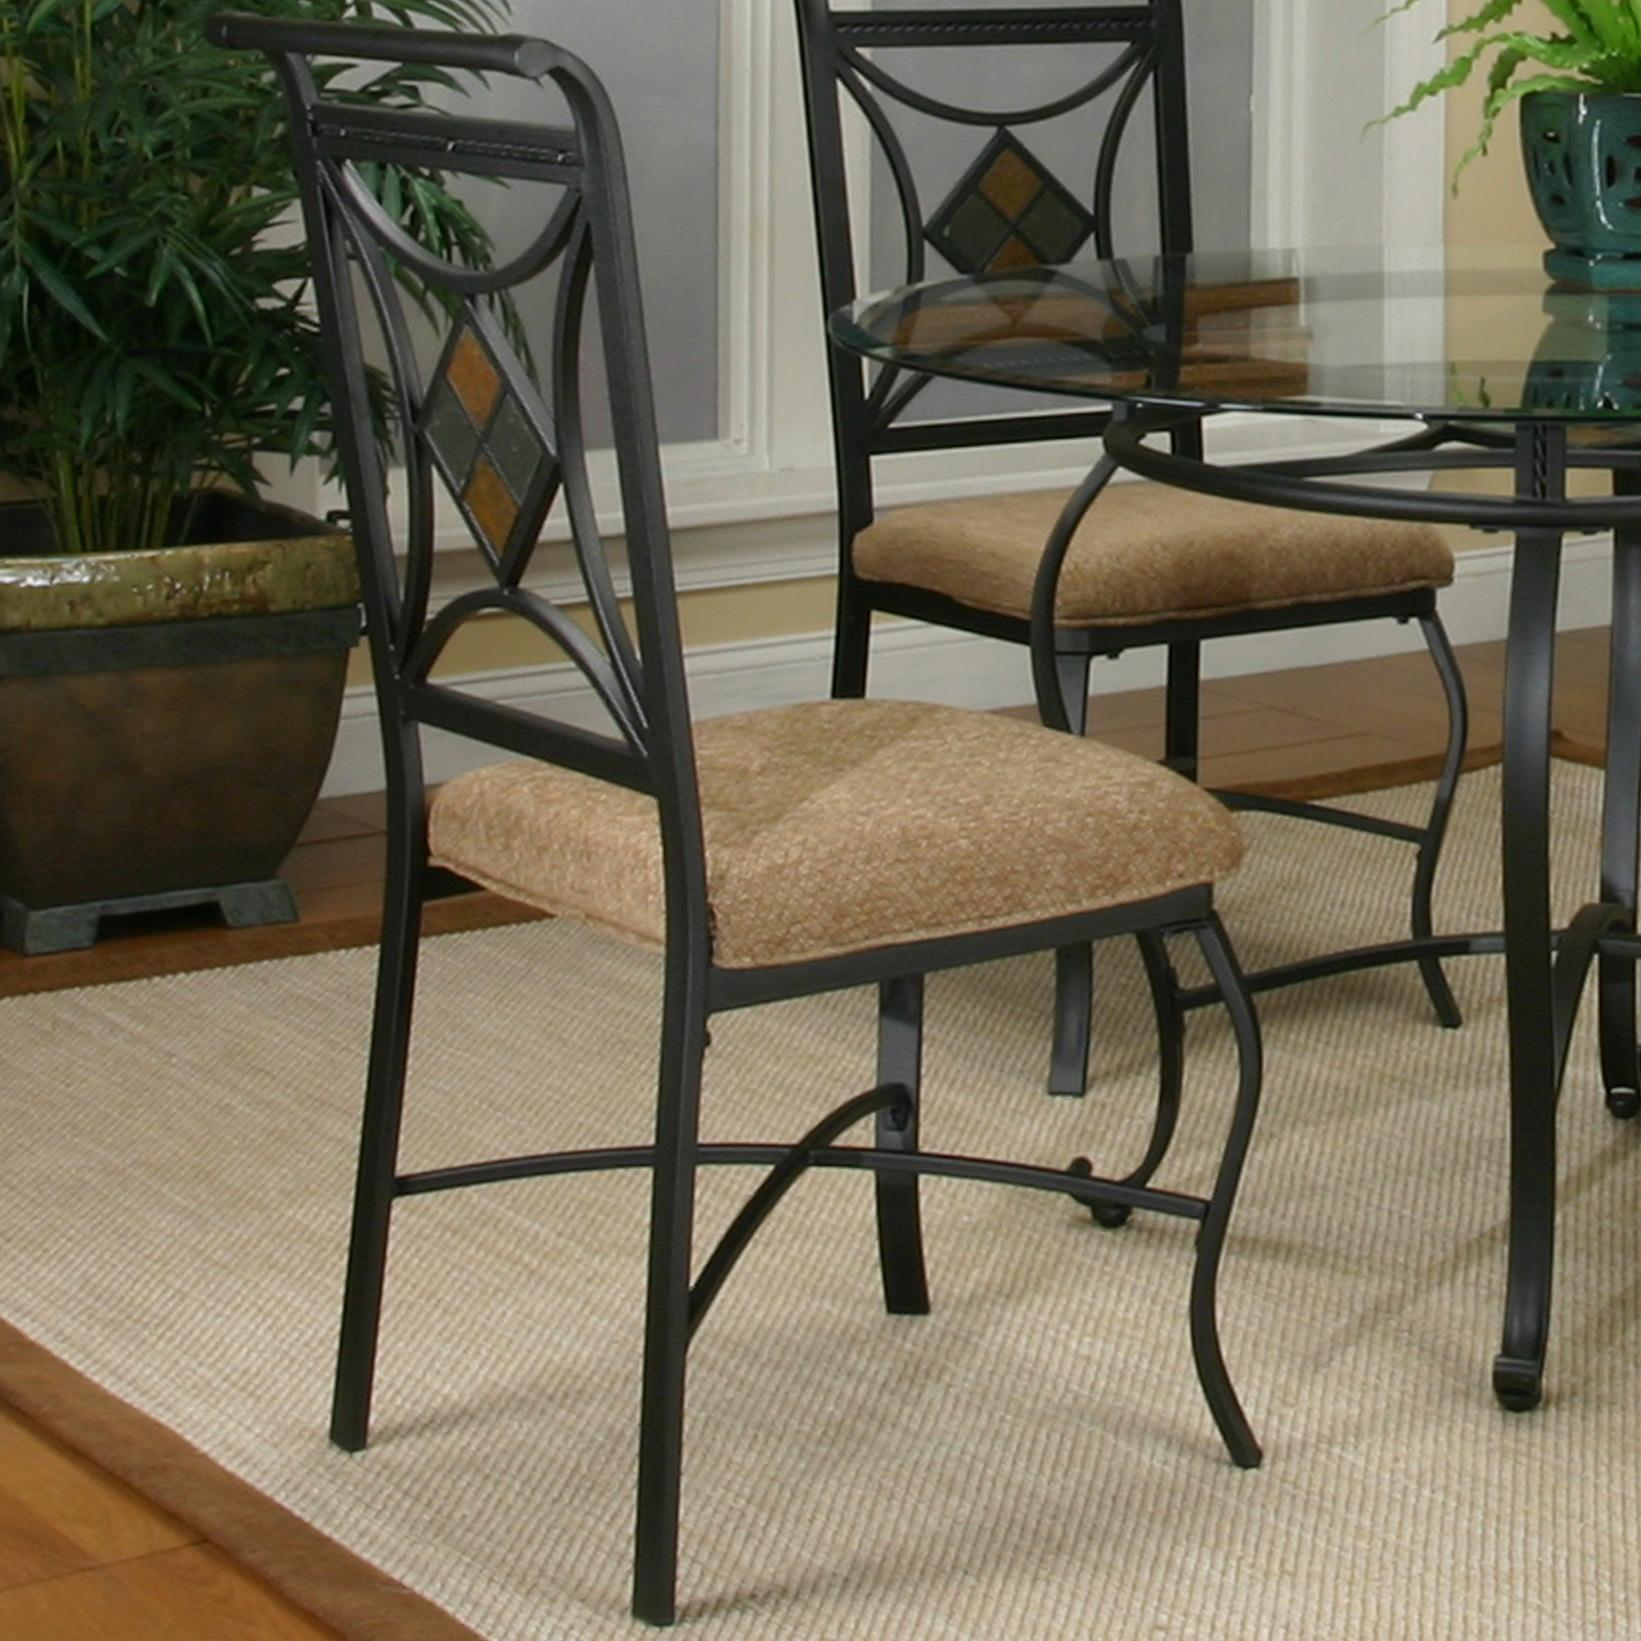 Cramco Inc Cramco Trading Company Glendale W2195 01 Metal Side Chair W Upholstered Seat Corner Furniture Dining Side Chair